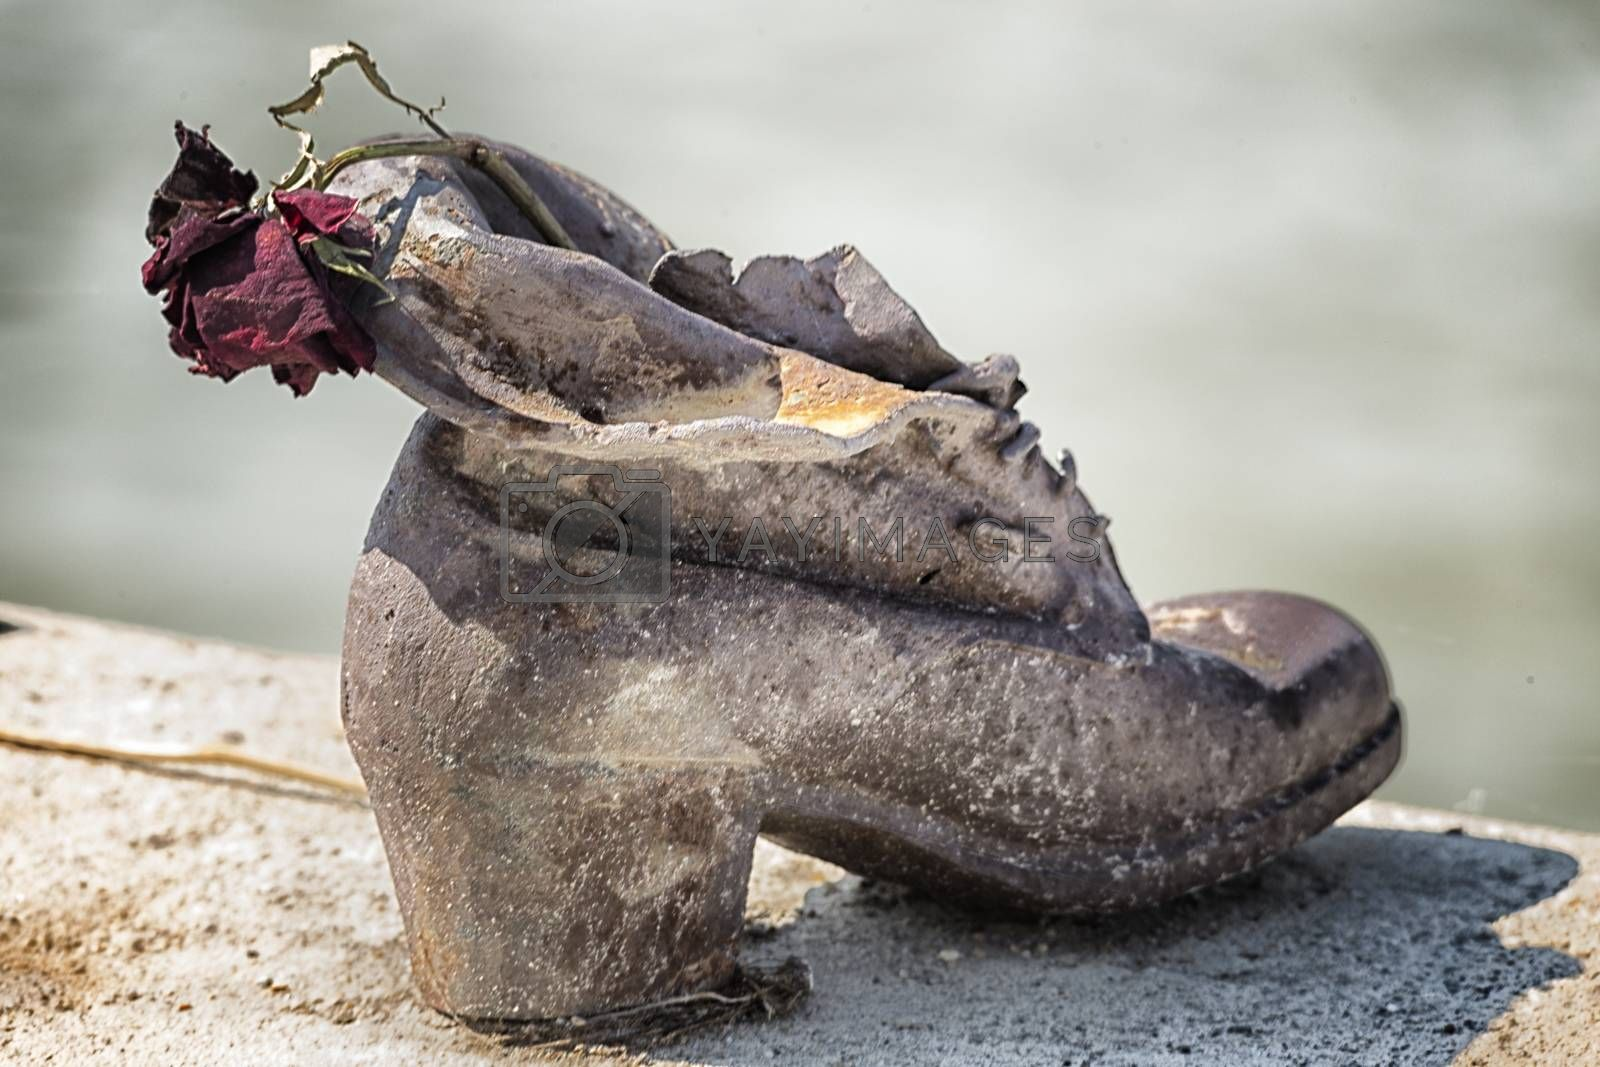 Rose on shoes on the Danube Bank in Budapest by paocasa